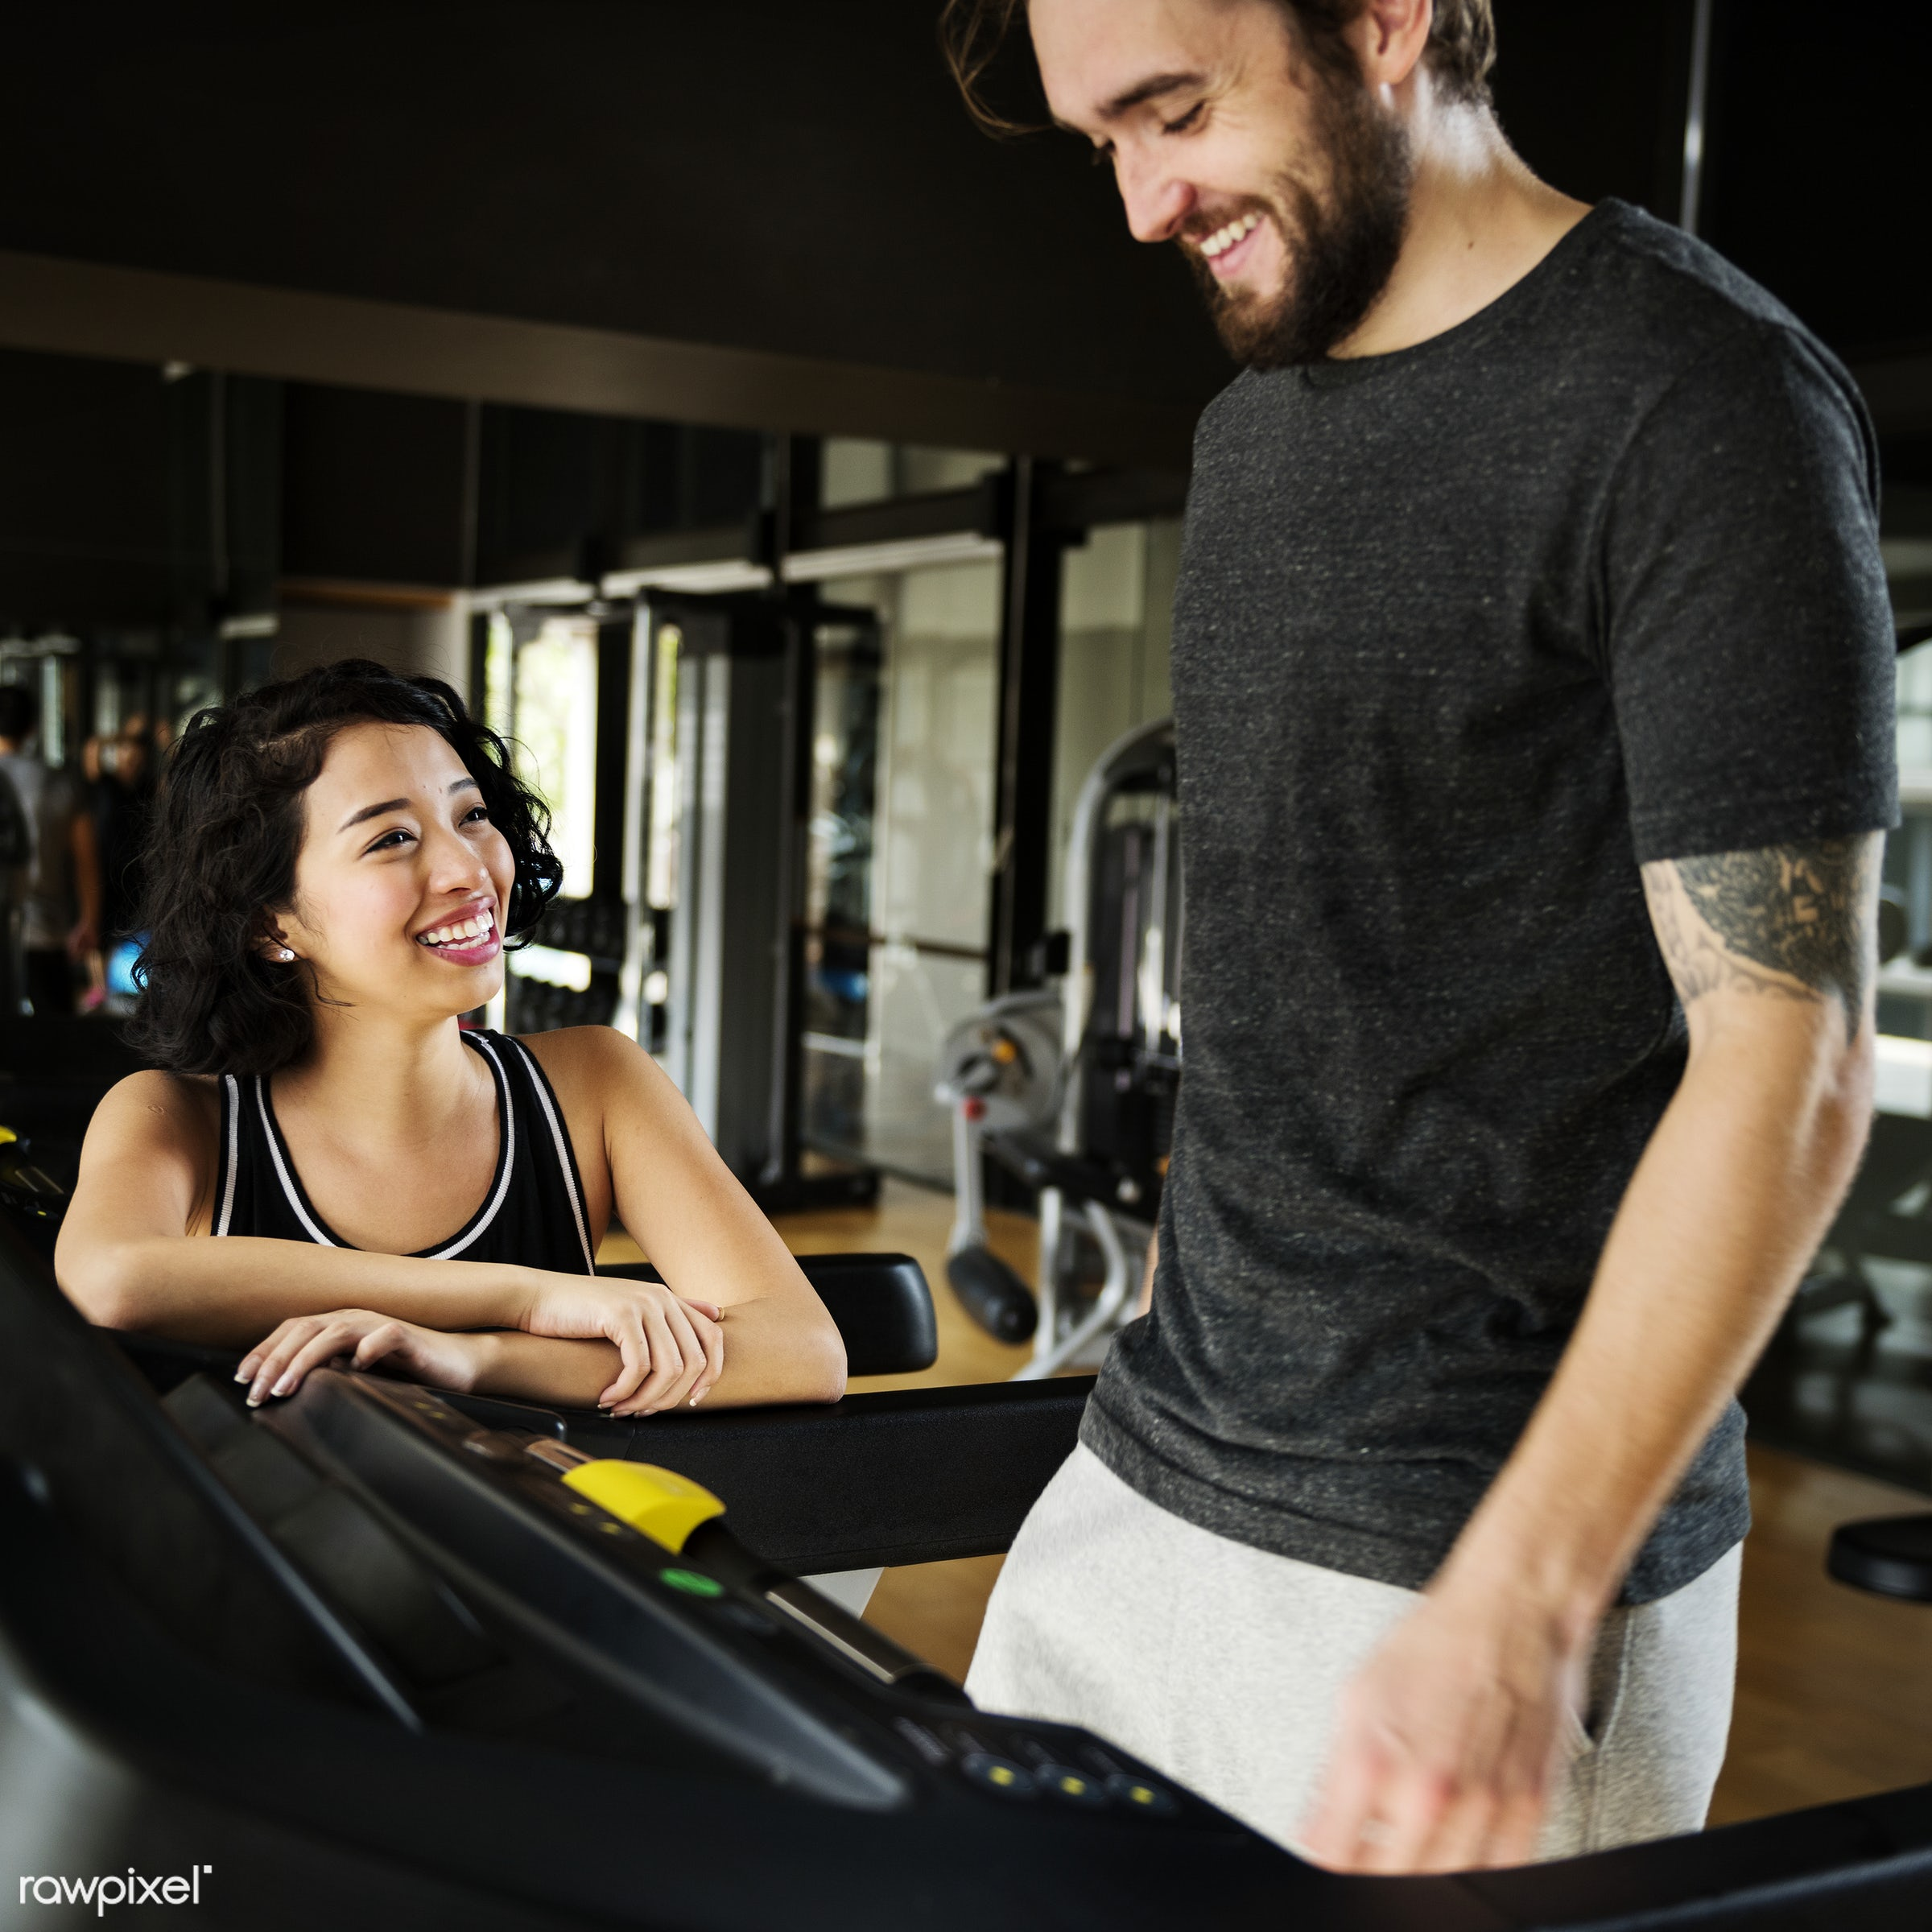 Couple working out together in the gym - gym, active, adult, asian, assistance, athlete, athletic, attractive, body,...